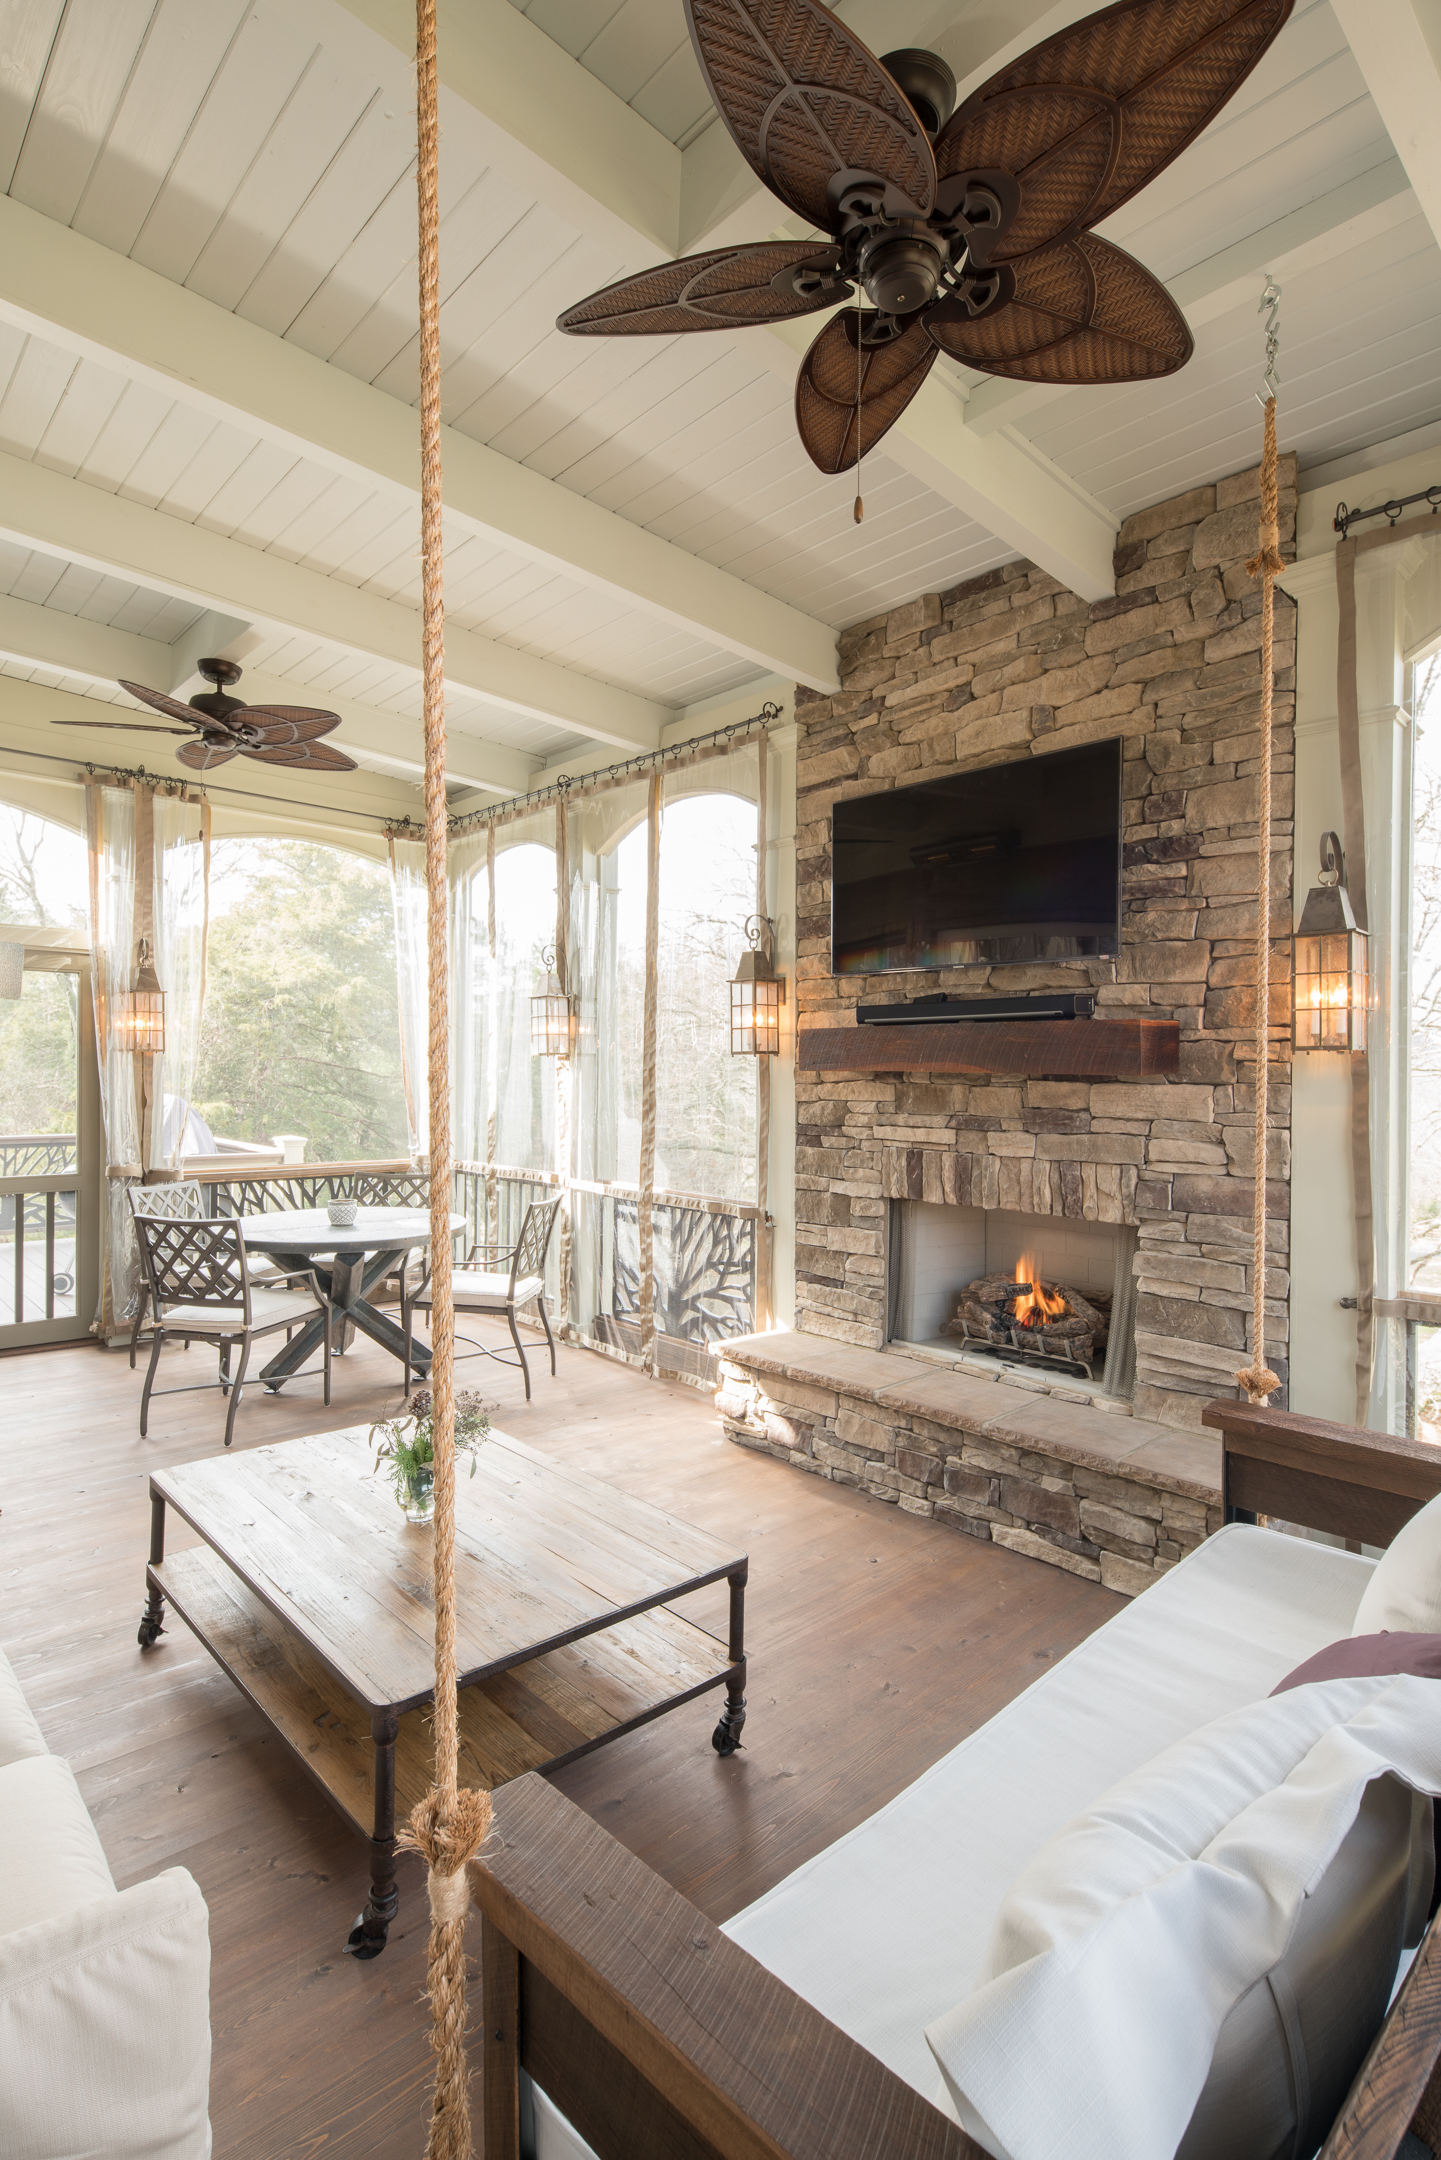 5 Great Ways To Enjoy Fall On Your Screened Porch